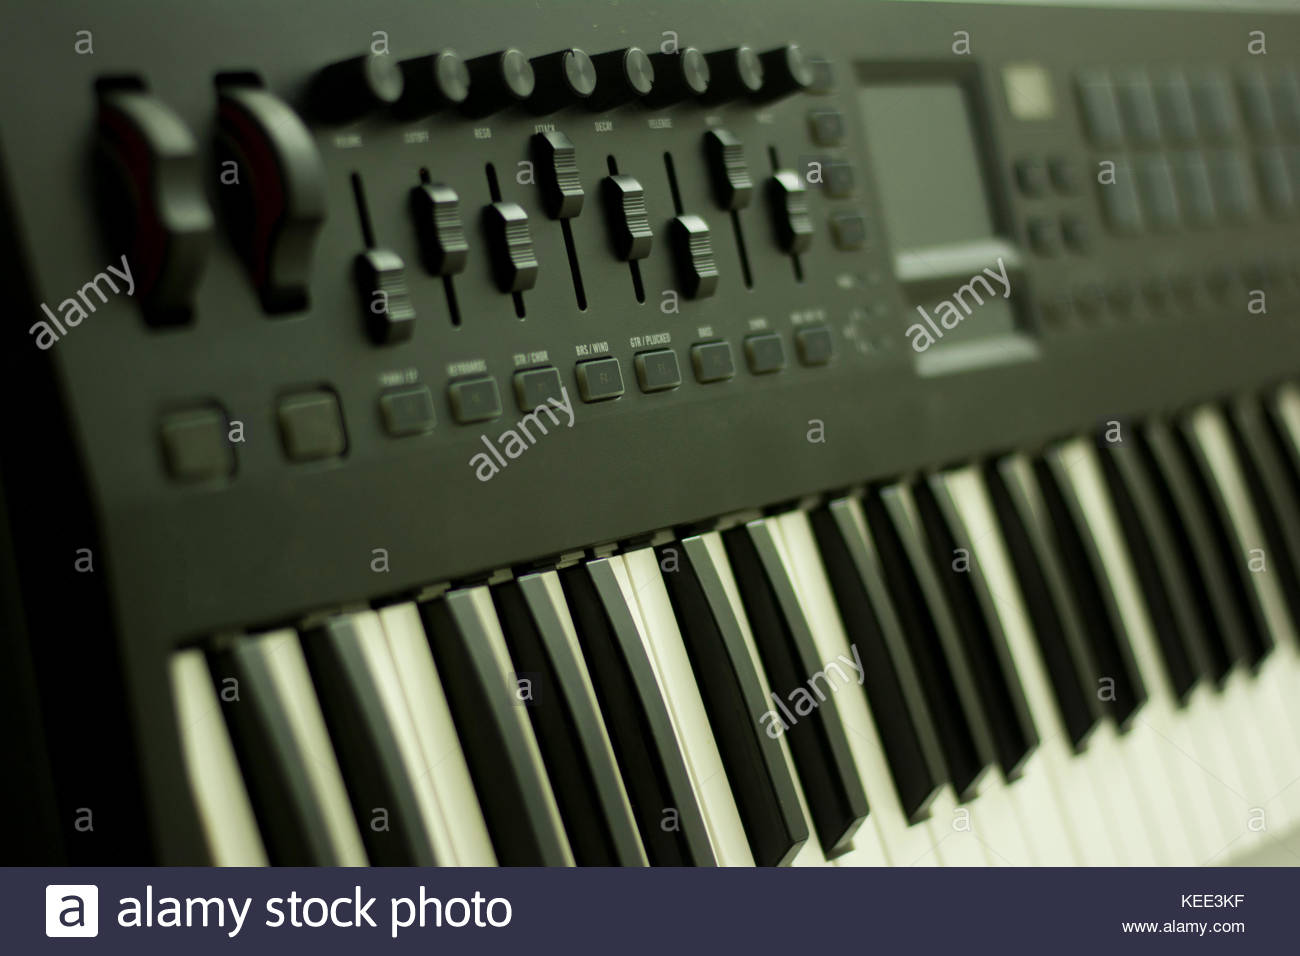 musical keyboard instrument close up composition photography - Stock Image